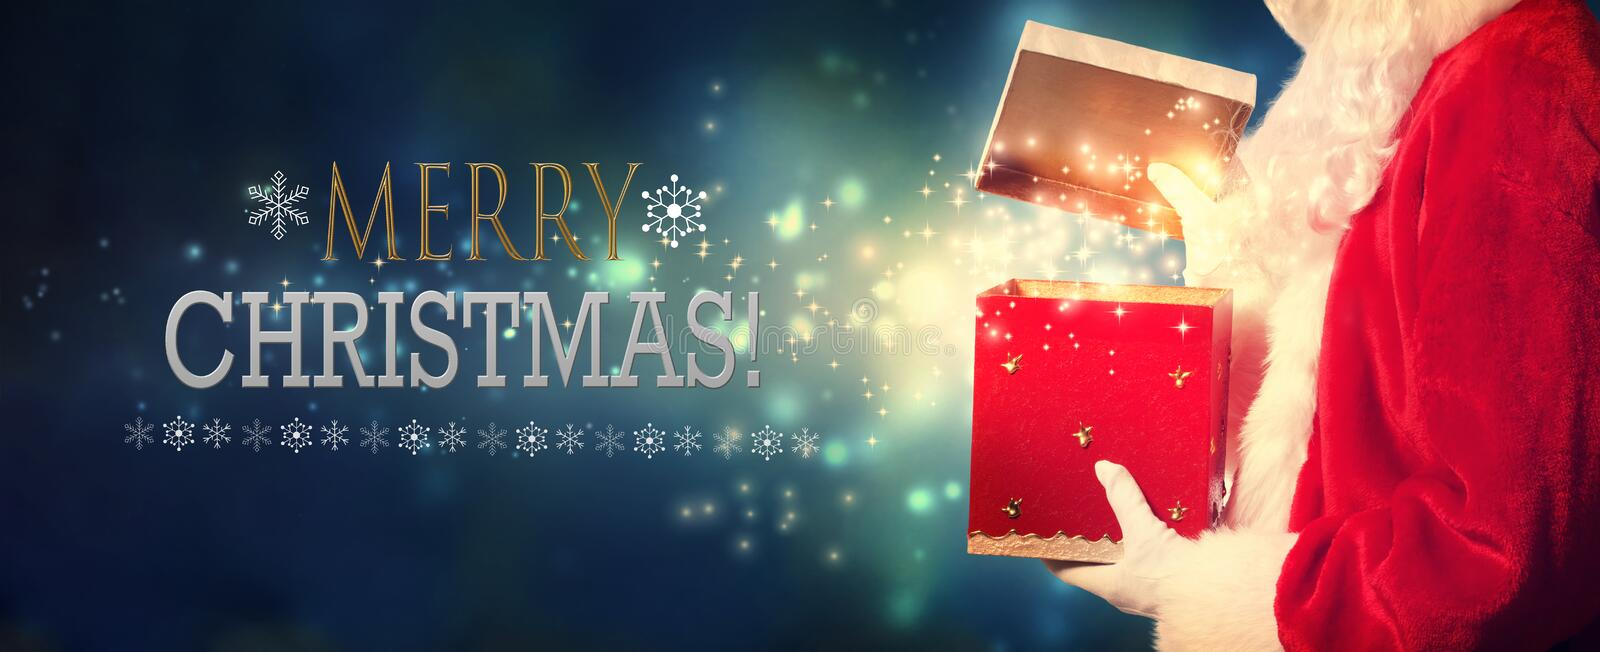 Merry Christmas message with Santa opening a gift box stock photos